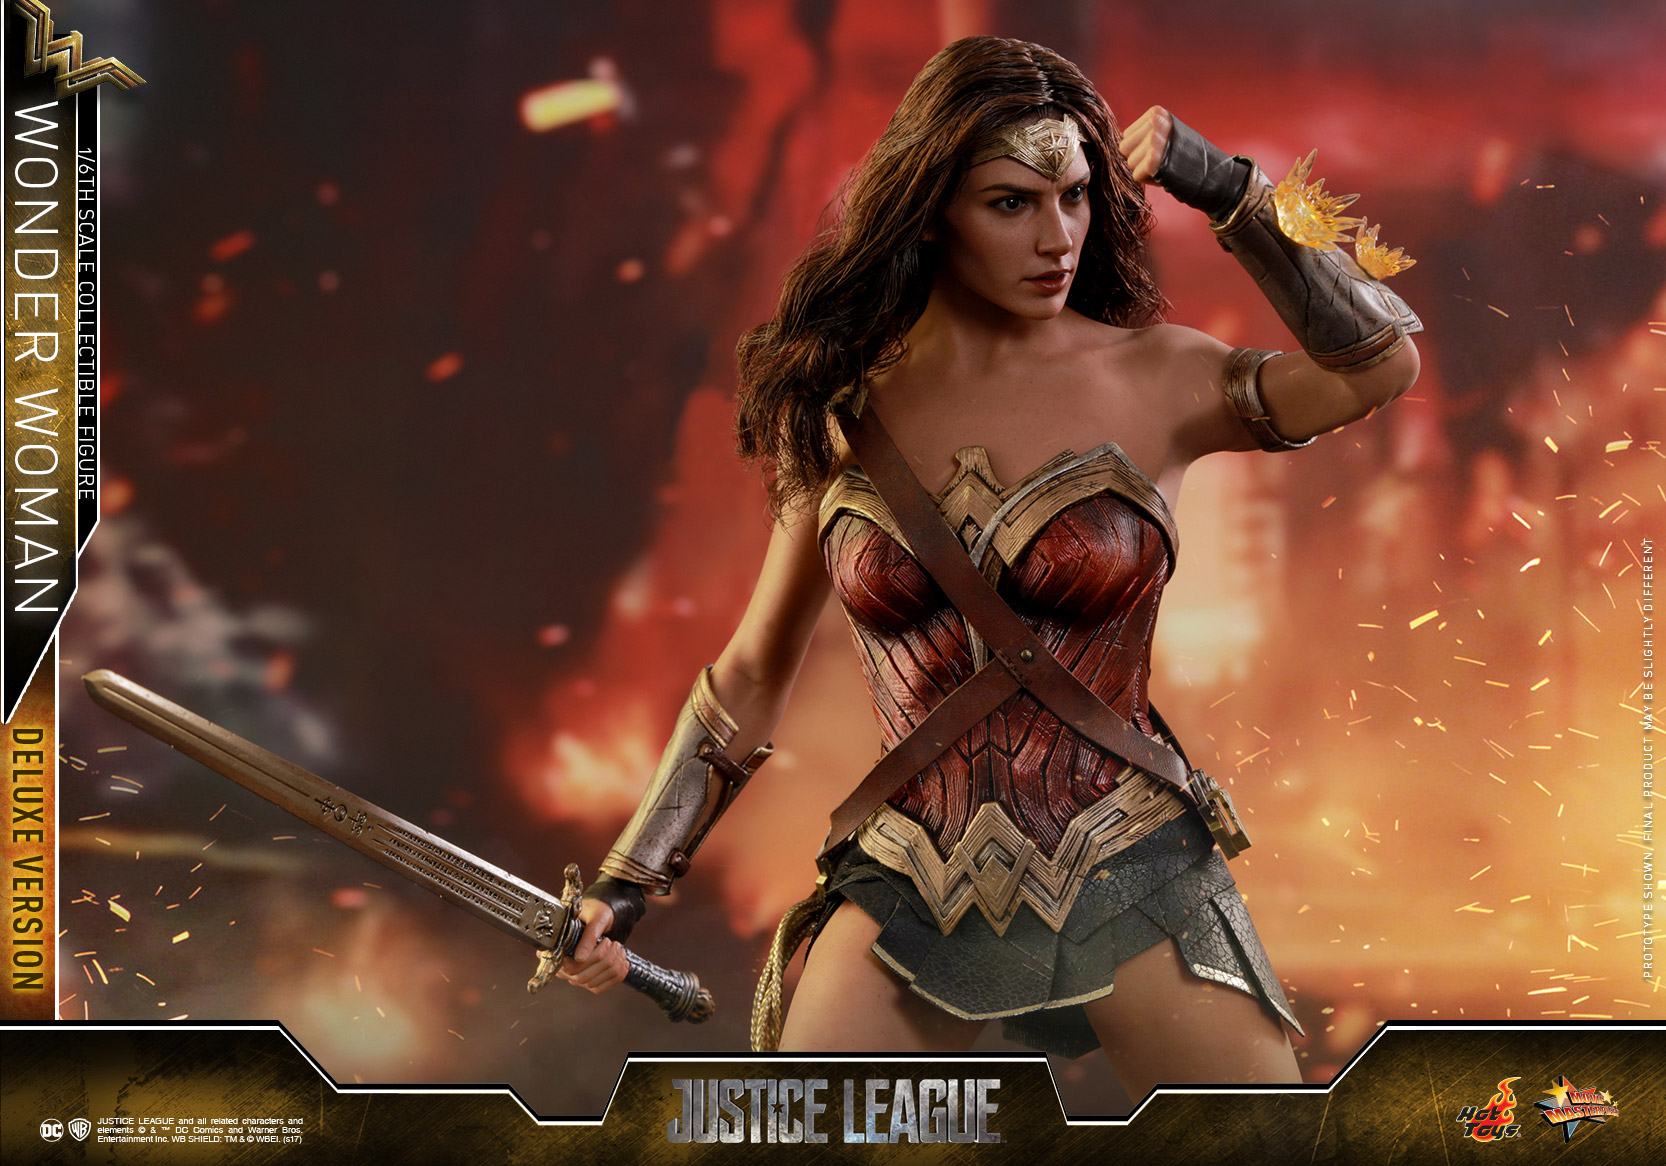 Hot-Toys-Justice-League-Wonder-Woman-collectible-figure-Deluxe_PR-14.jpg